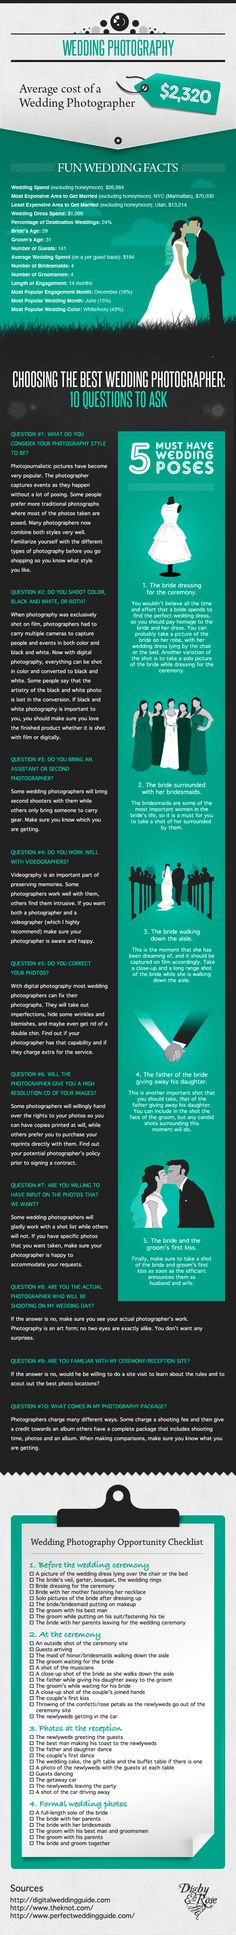 Wedding photography [infographic] - Holy Kaw!